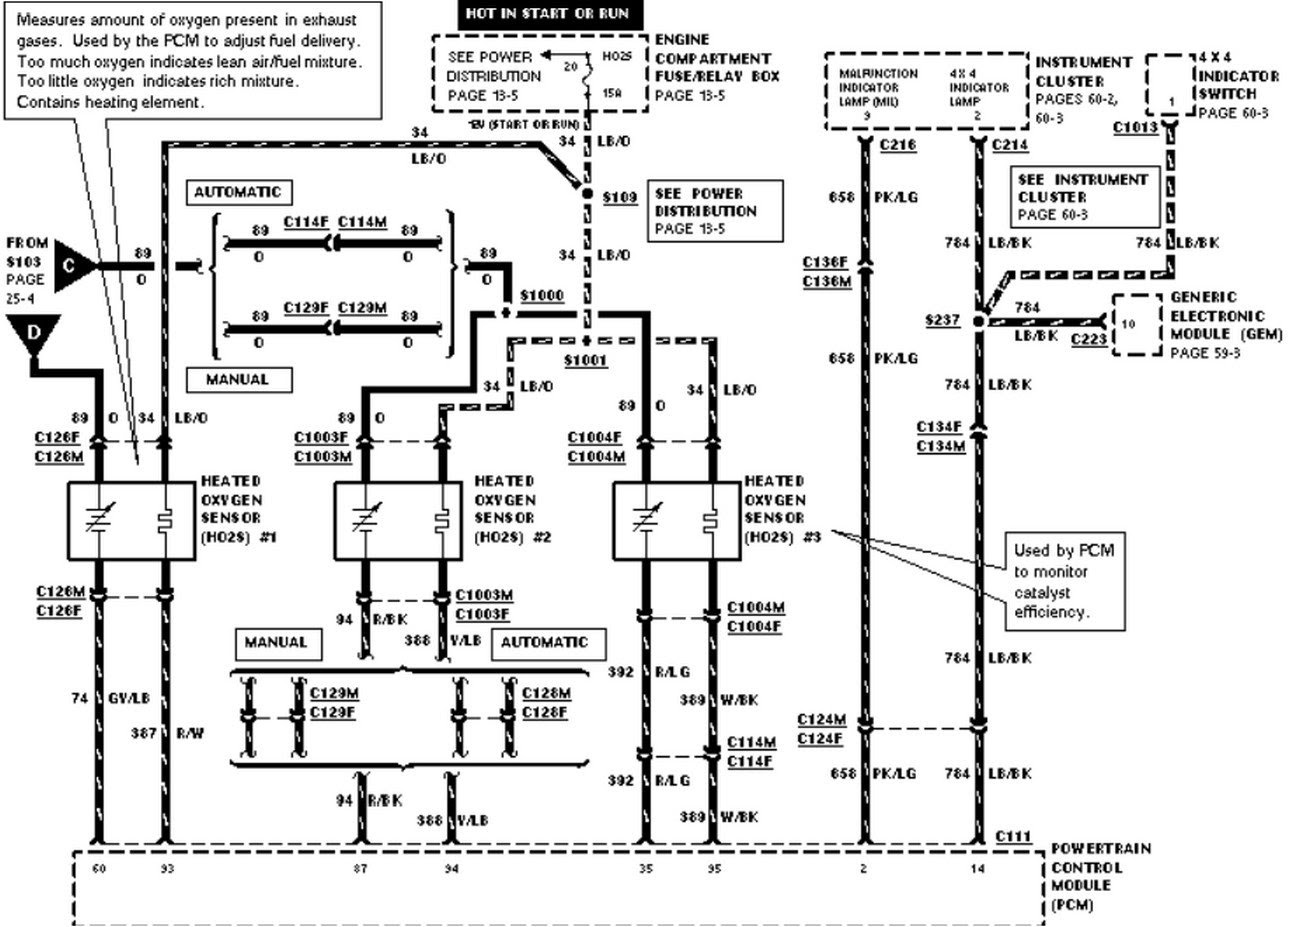 Diagram 1985 Ford Ranger Electrical Wiring Diagram Full Version Hd Quality Wiring Diagram Diagrammaskek Gisbertovalori It